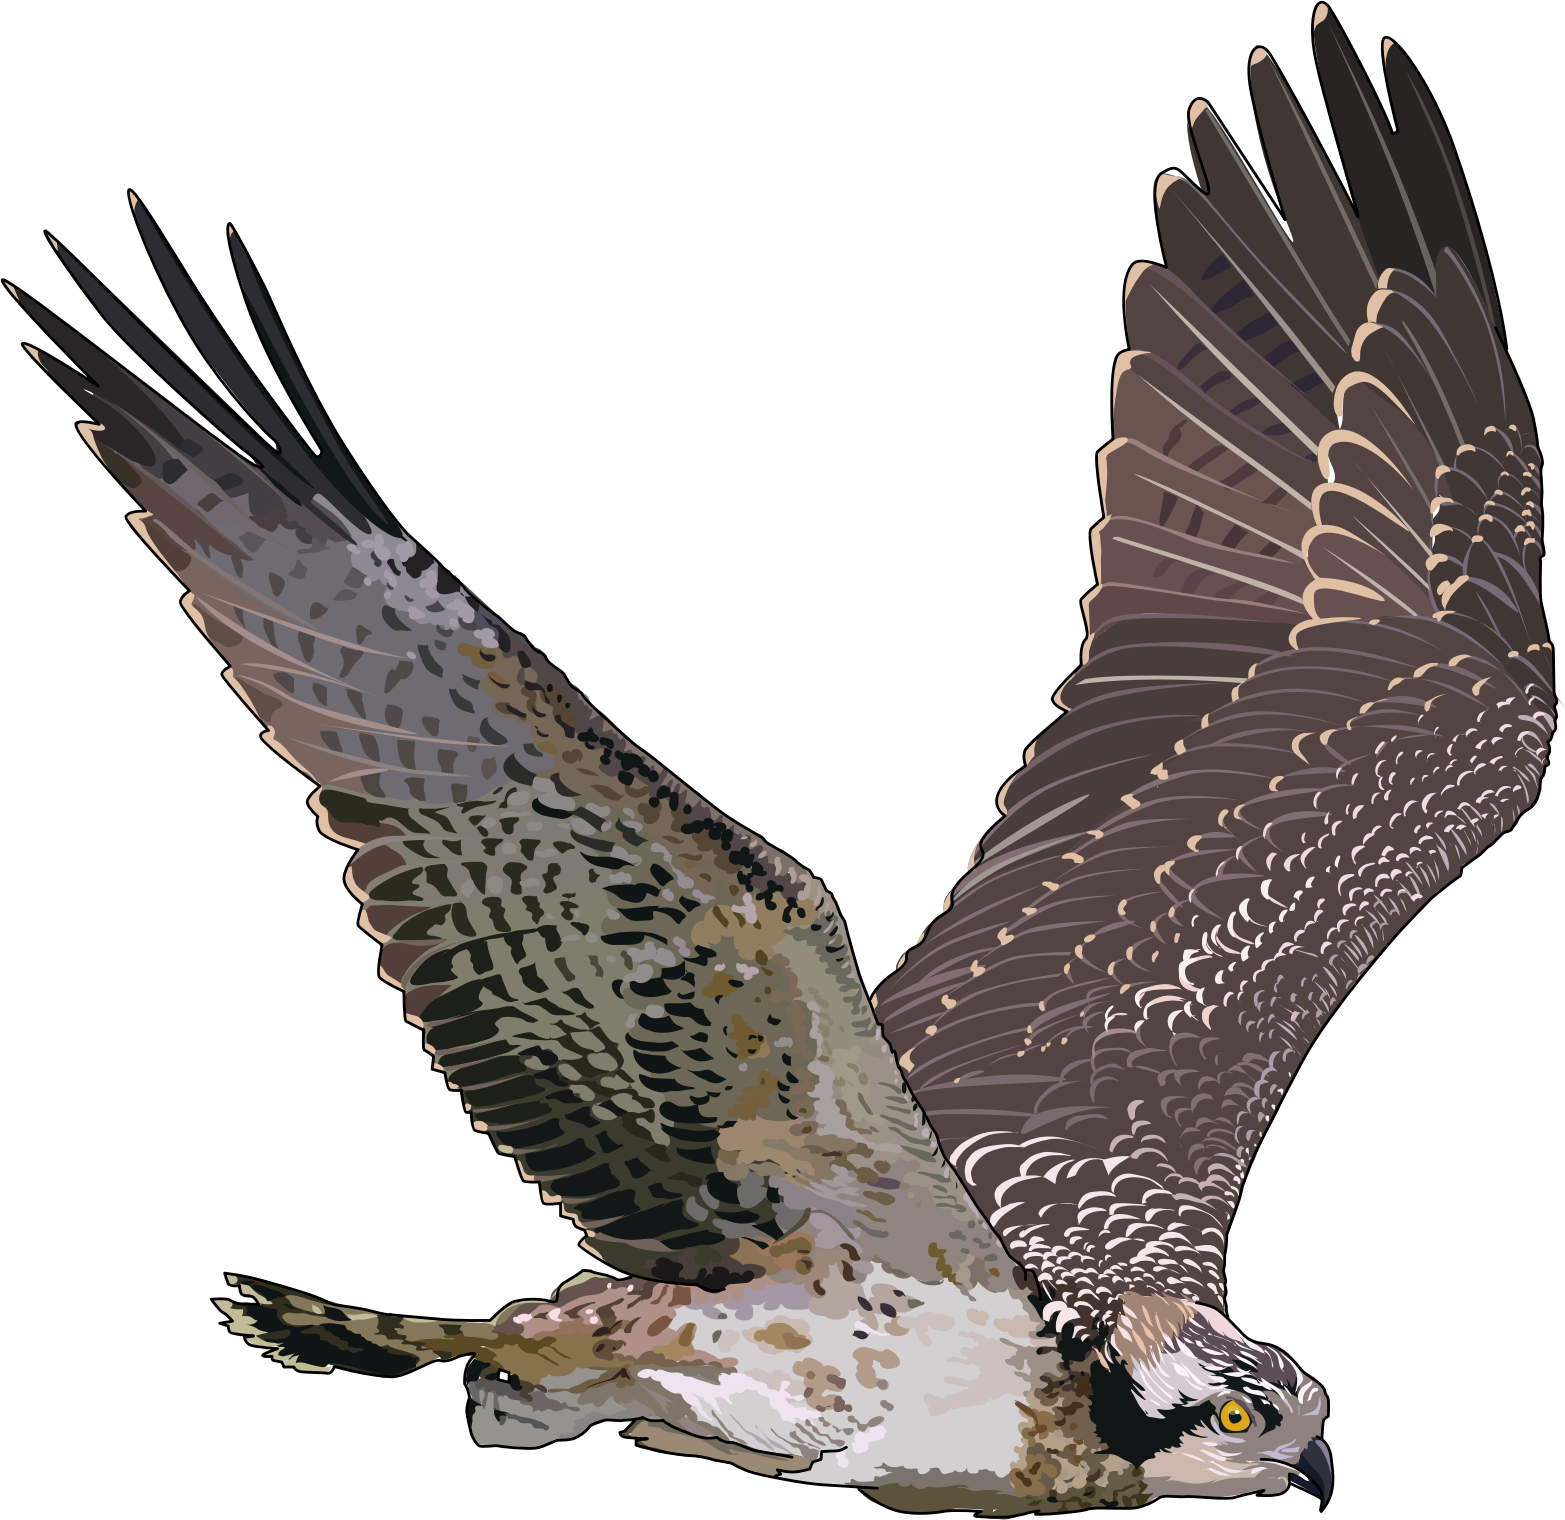 falcon png images free download hawk clipart free hawk clipart for